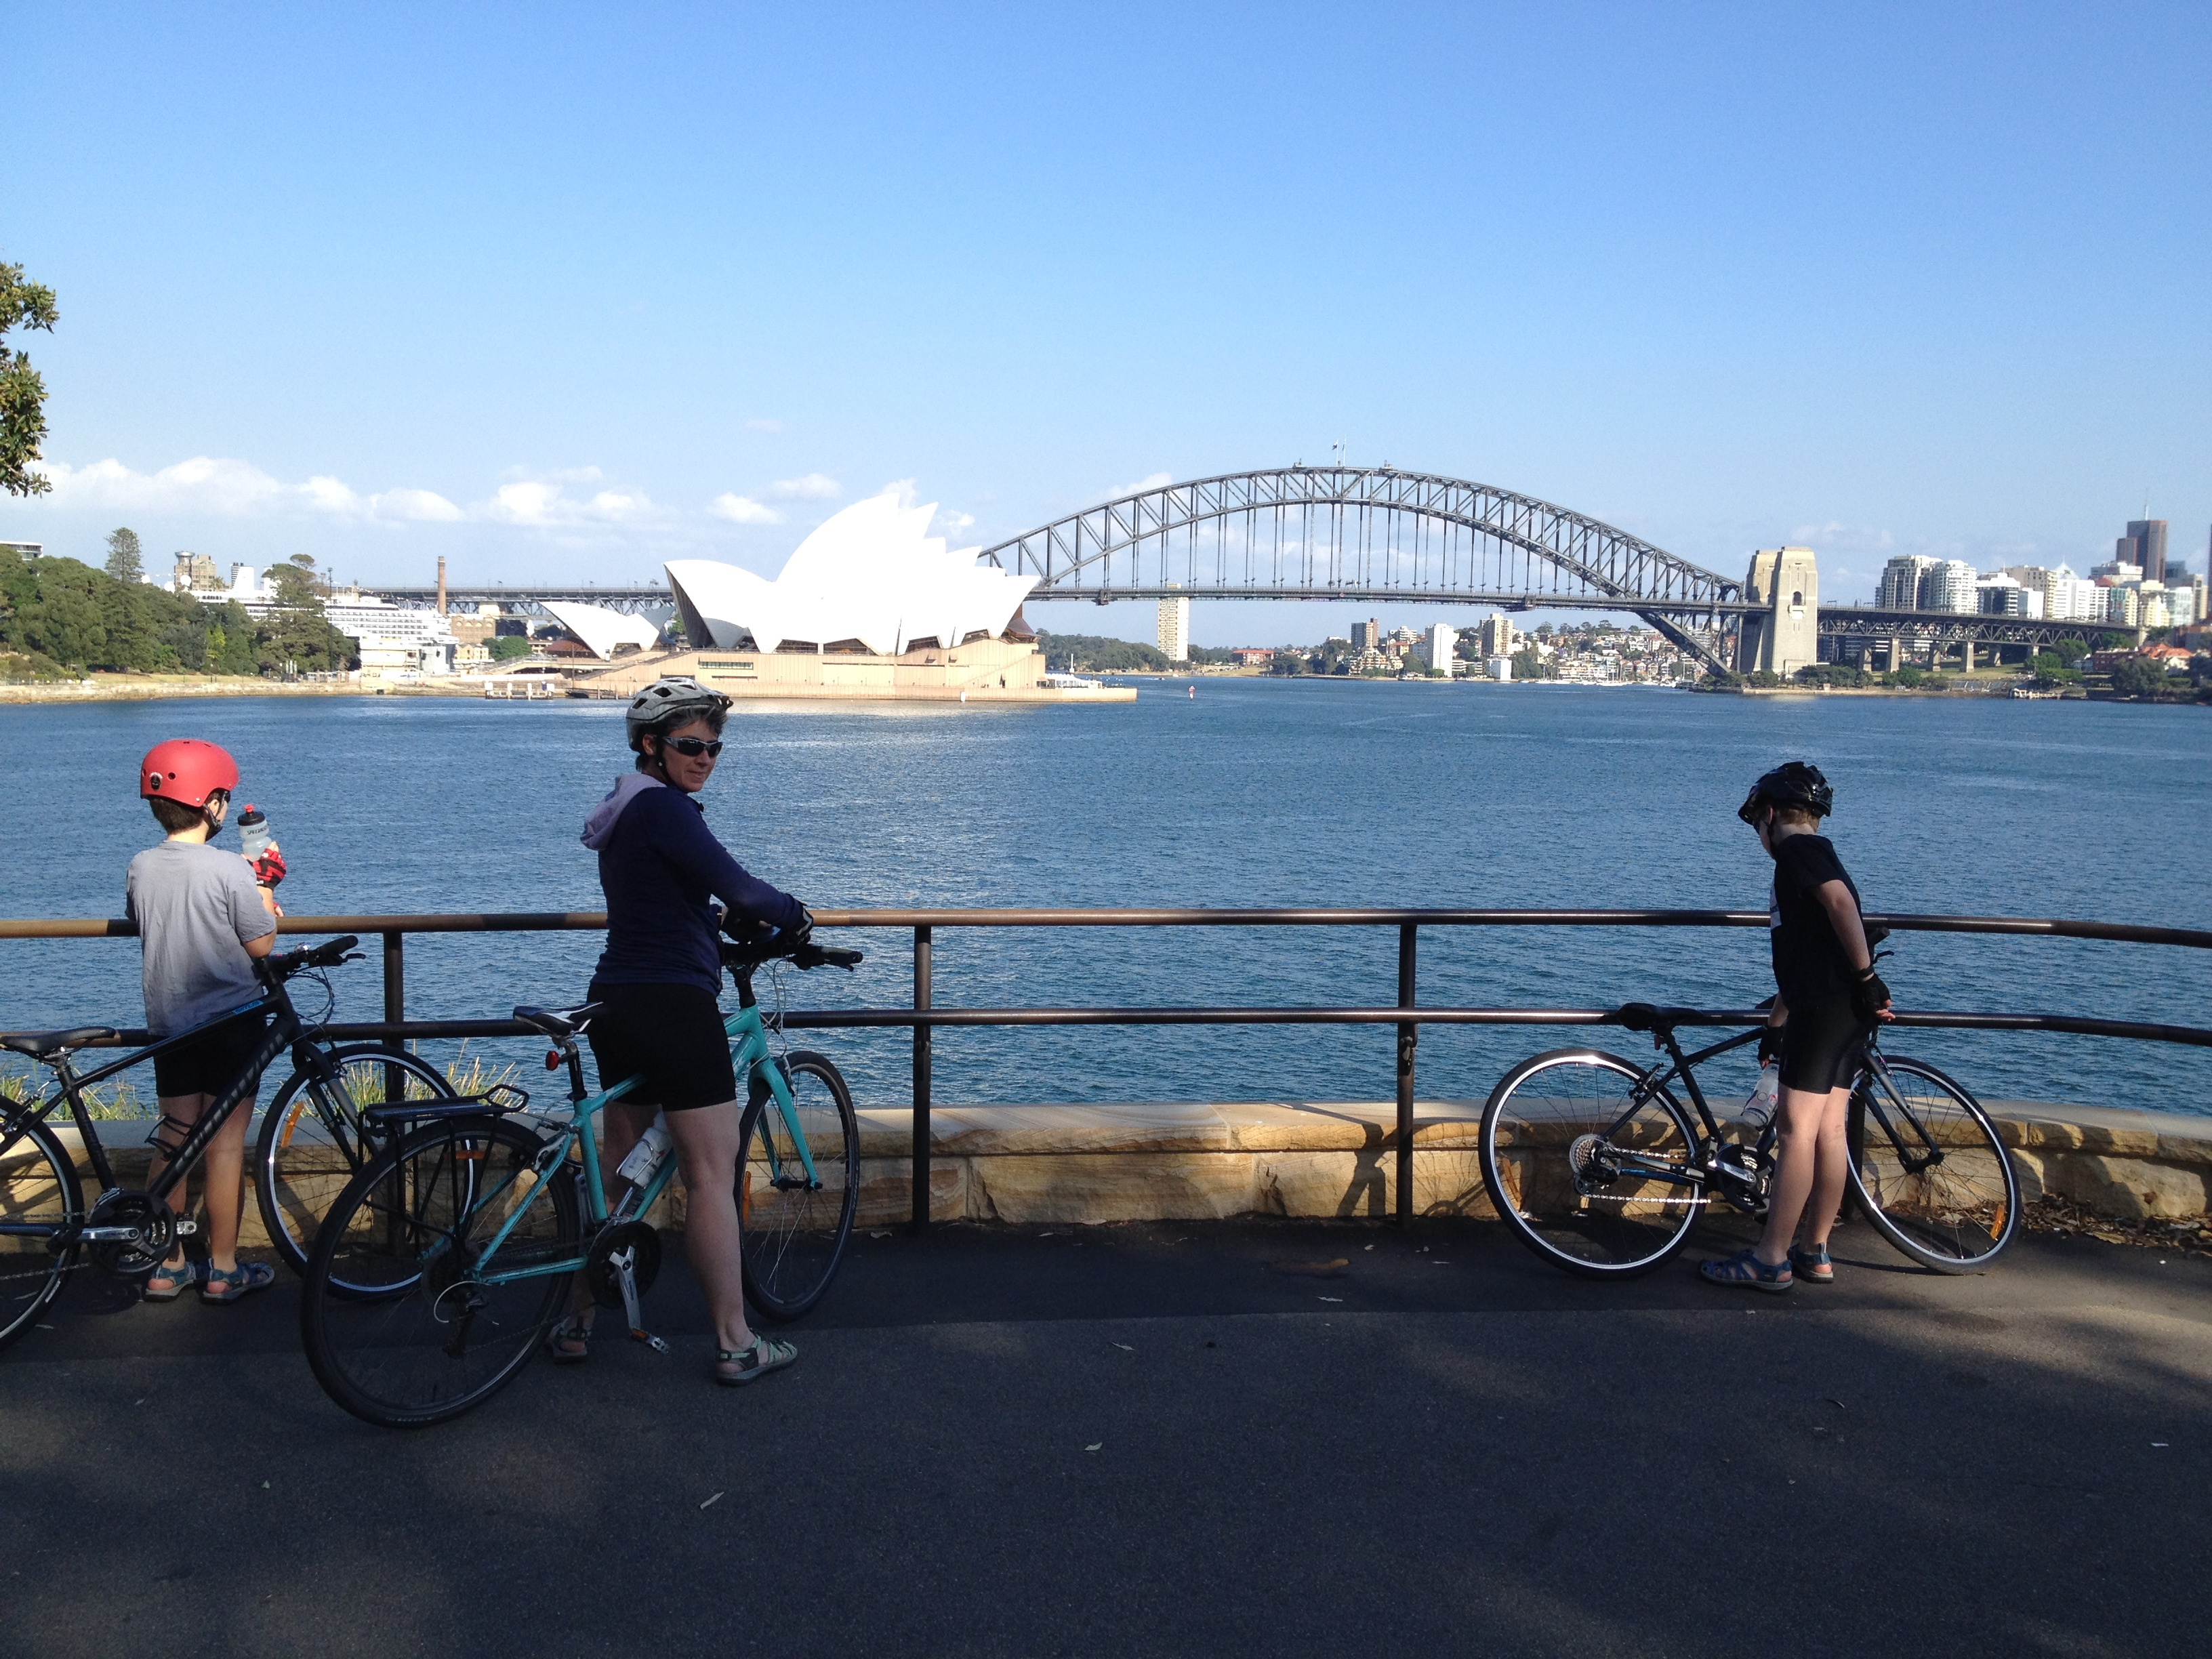 Cycling in Sydney - how risky is it really?